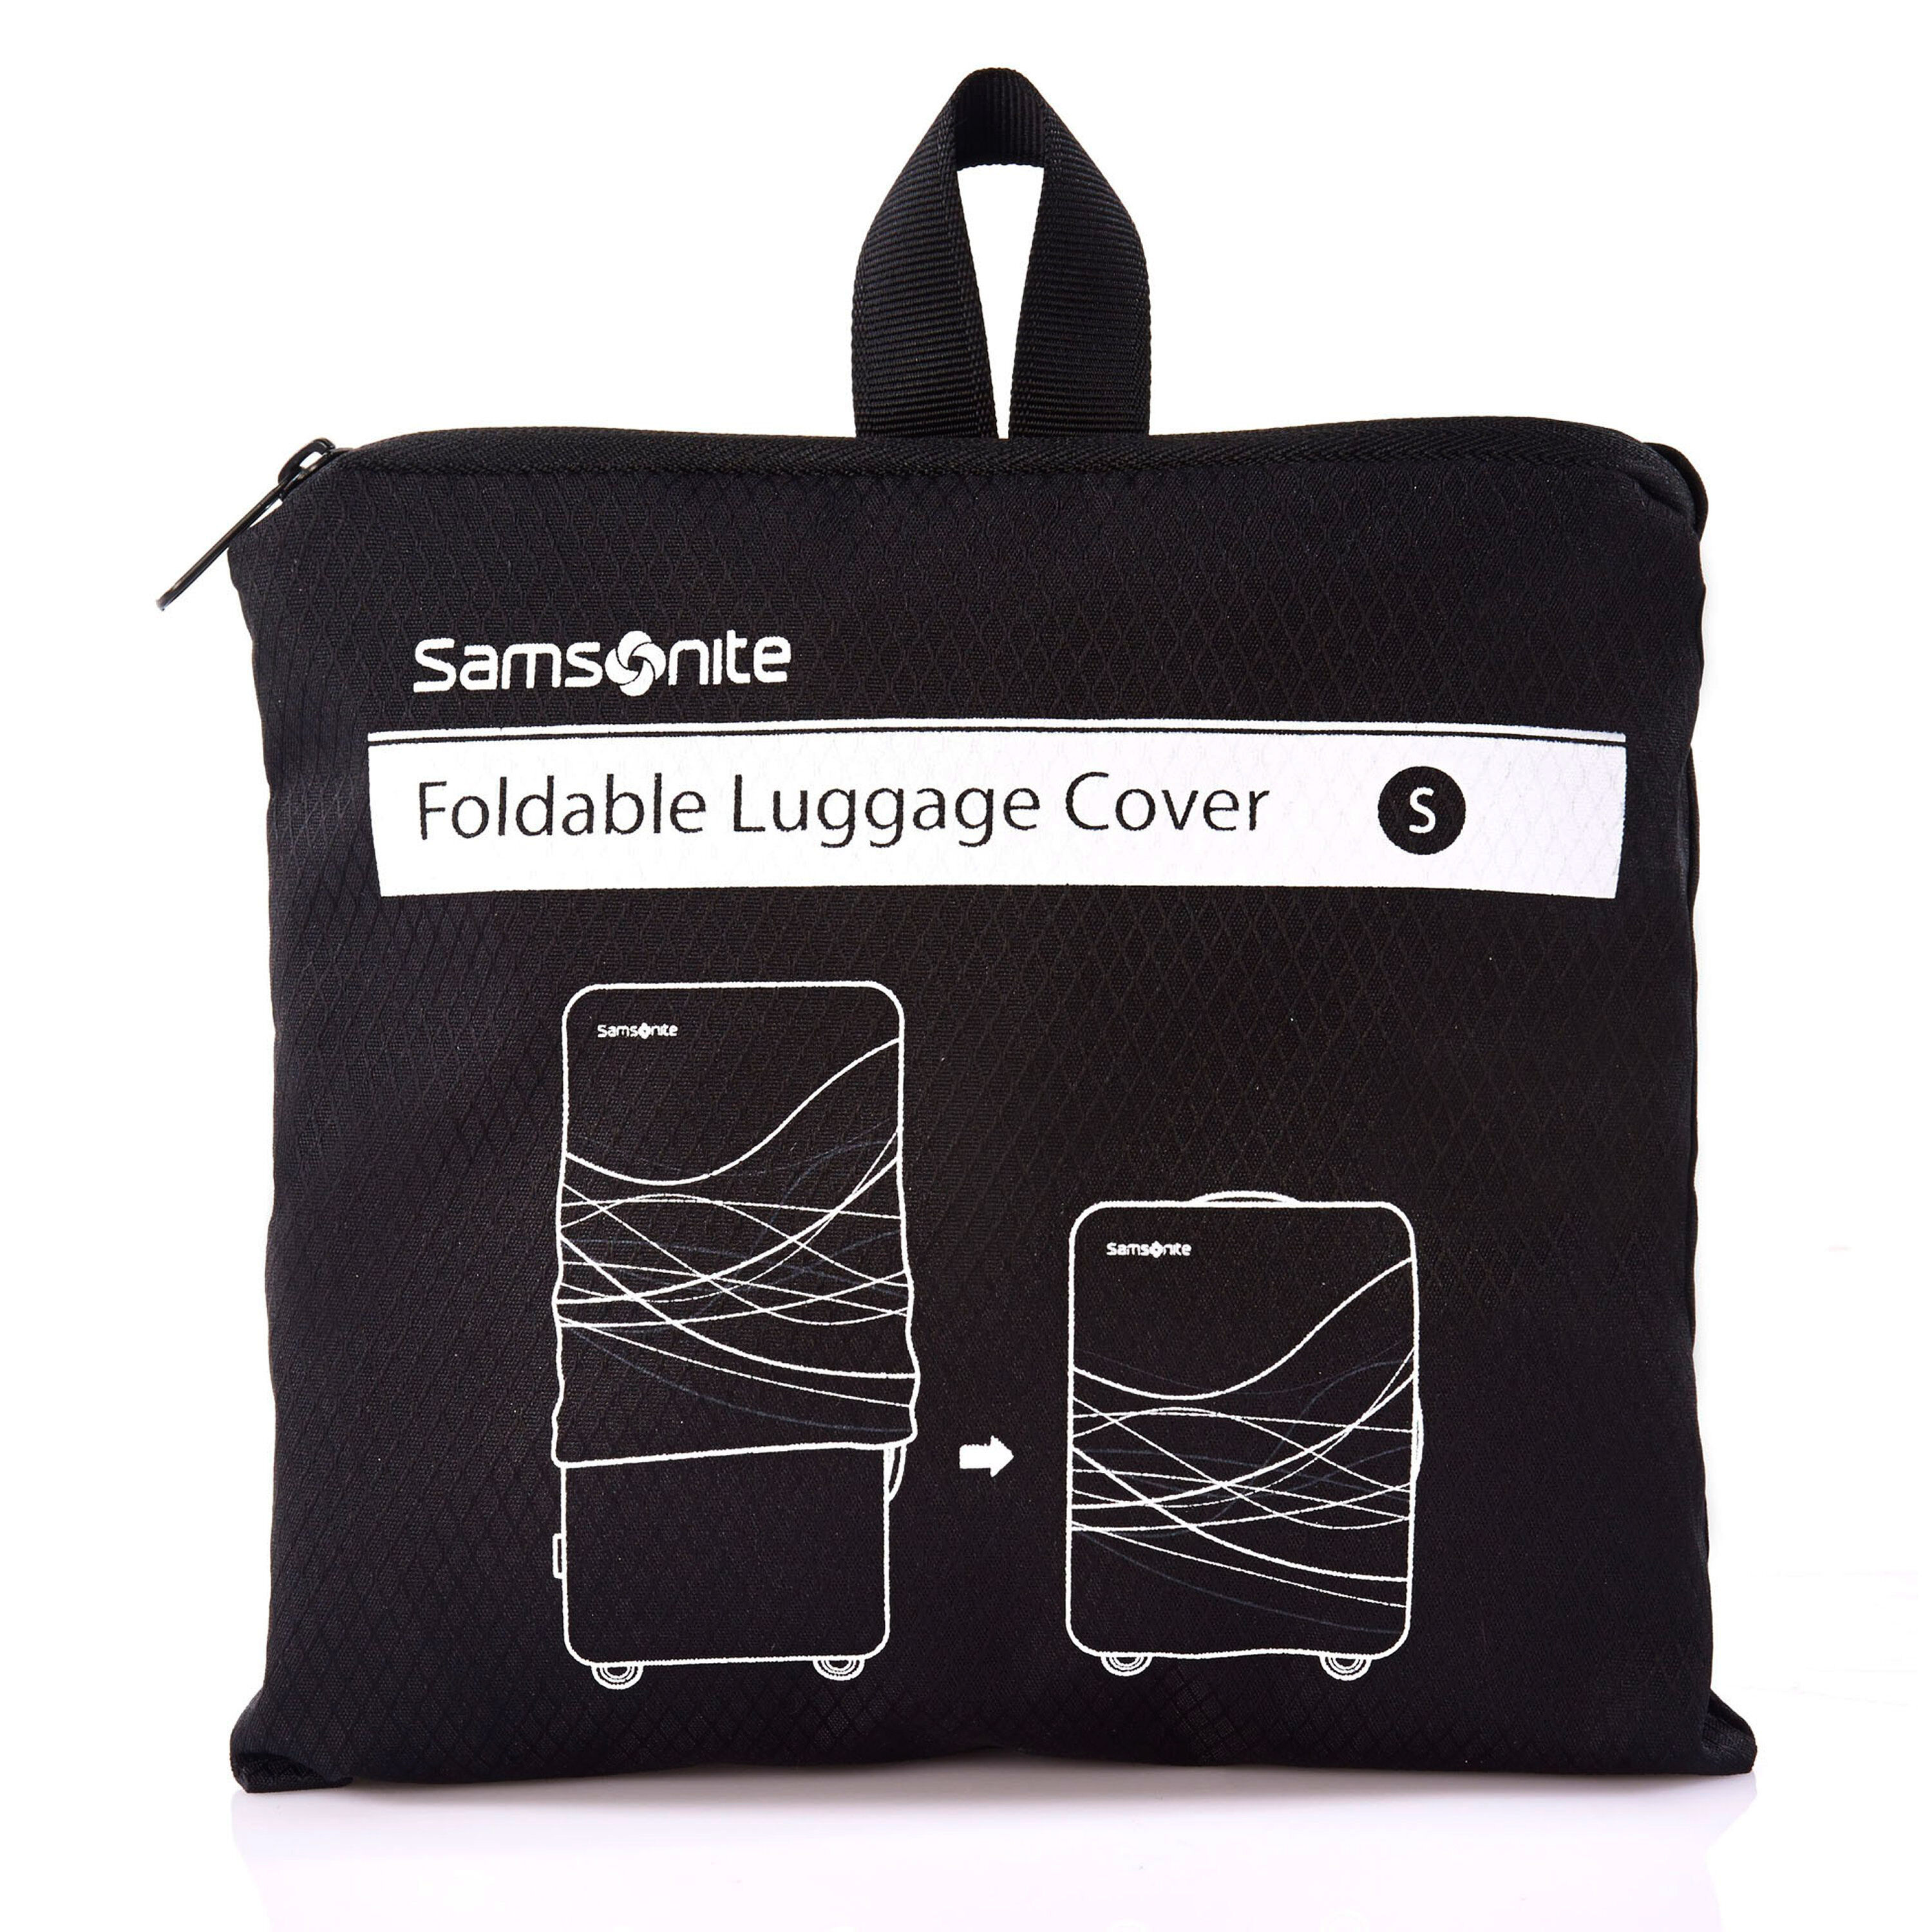 Small Foldable Luggage Cover